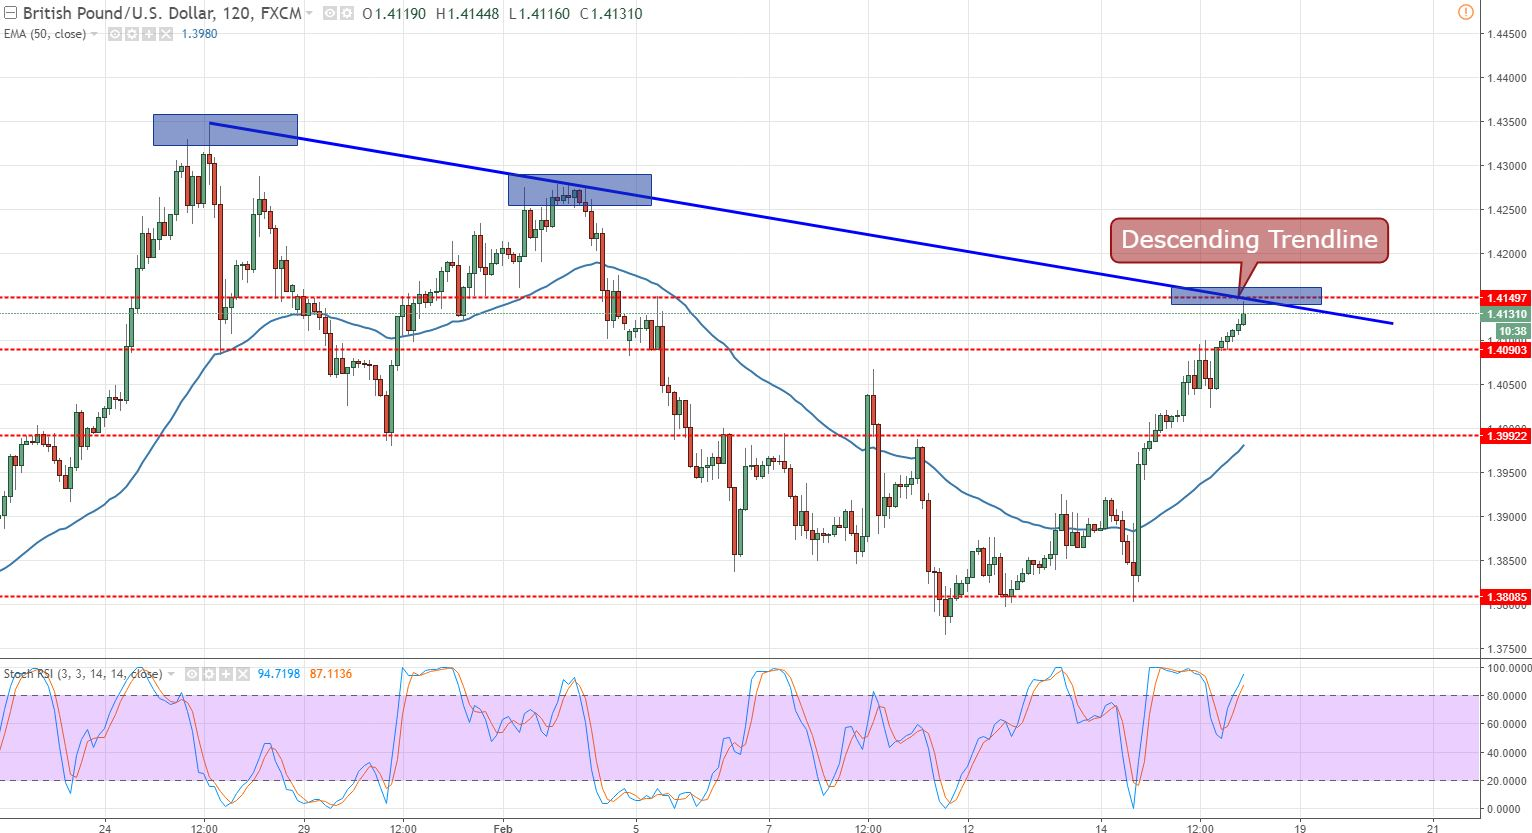 GBP/USD - 120 - Min - Bearish Trendline